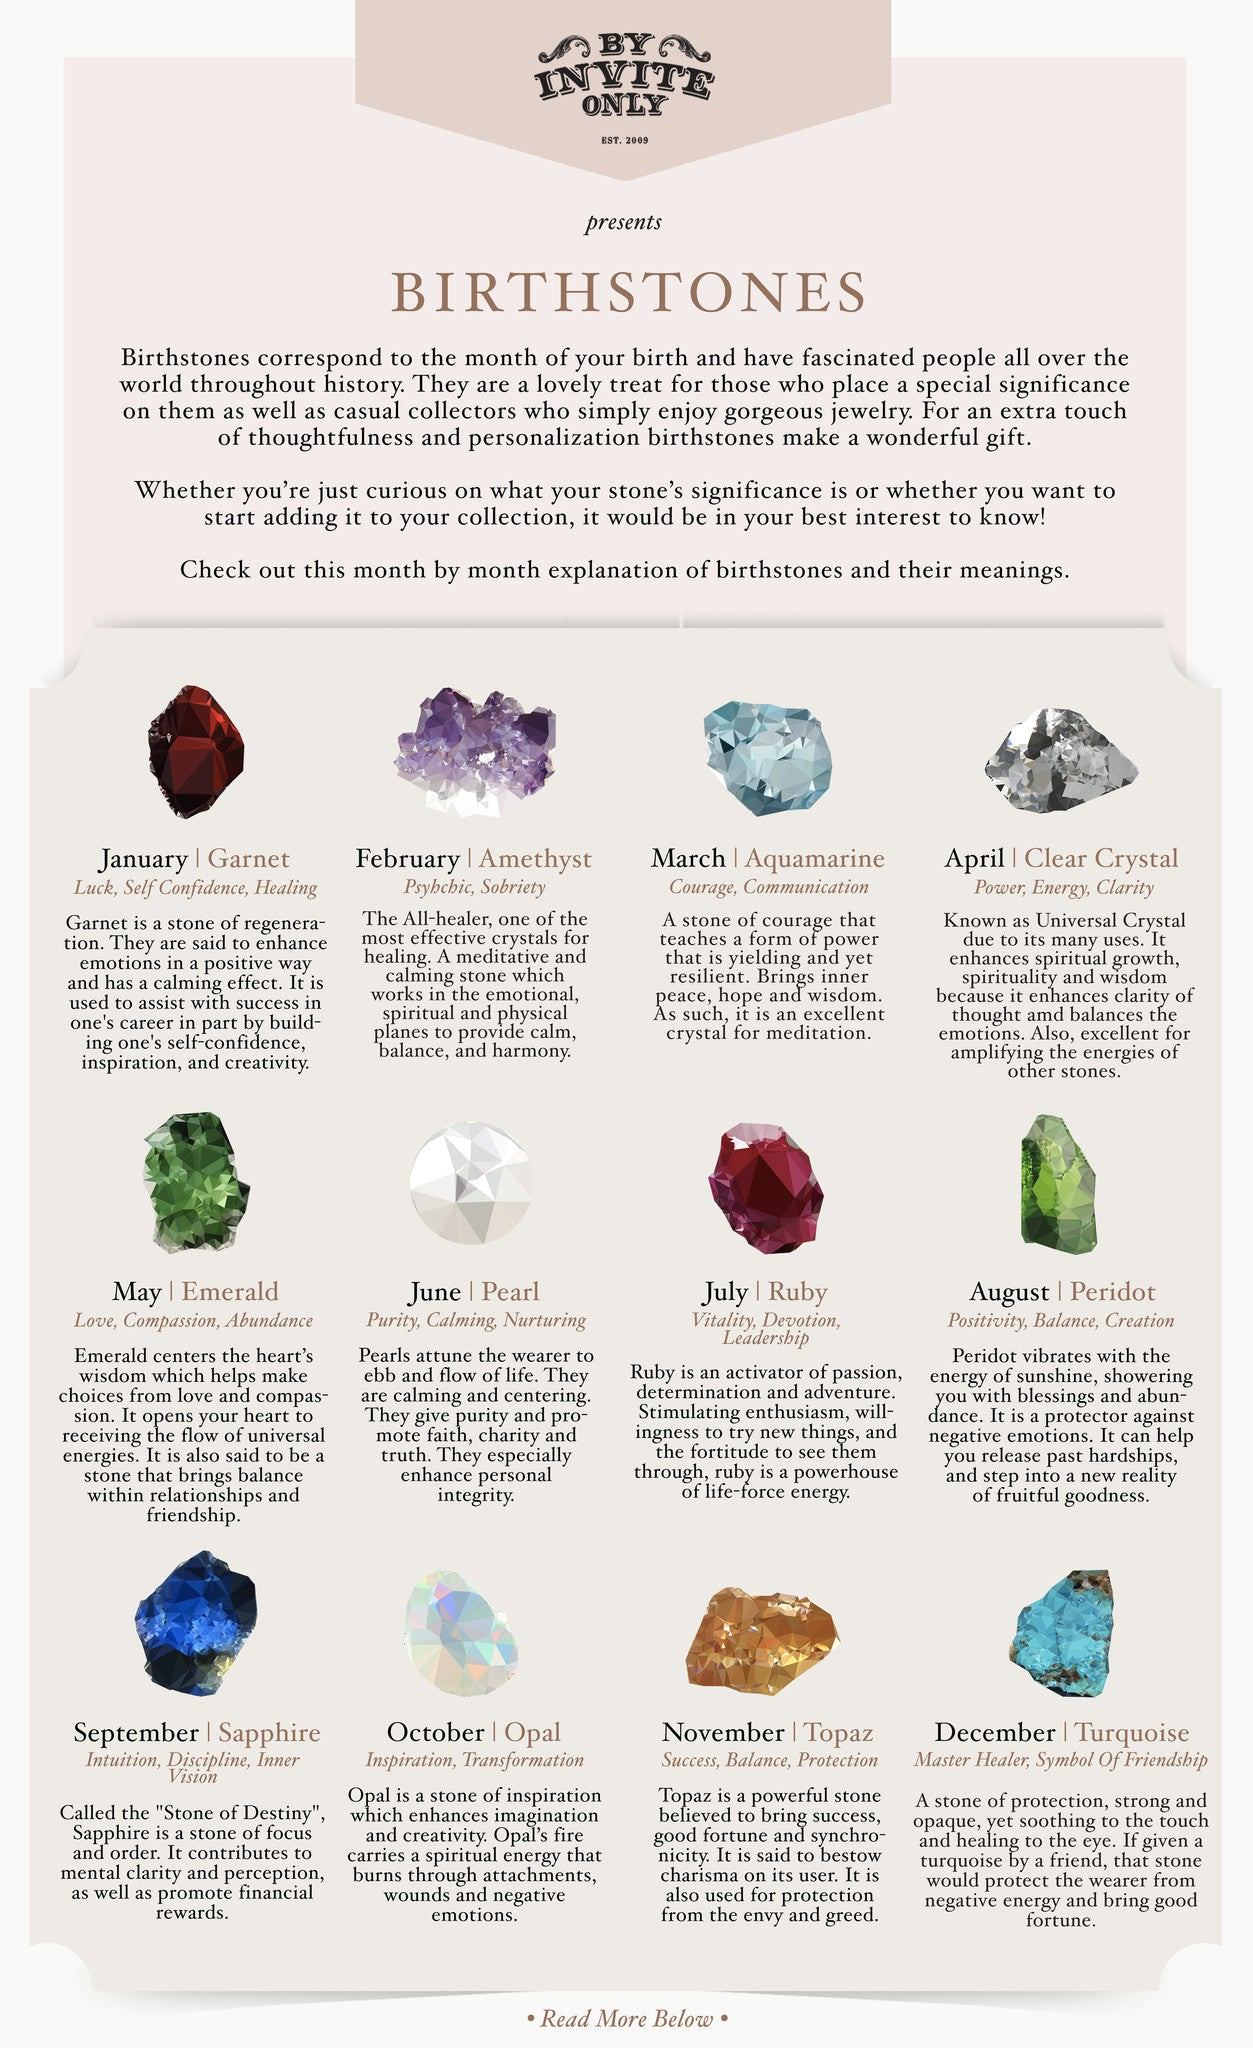 Birthstones: What do they mean? - By Invite Only